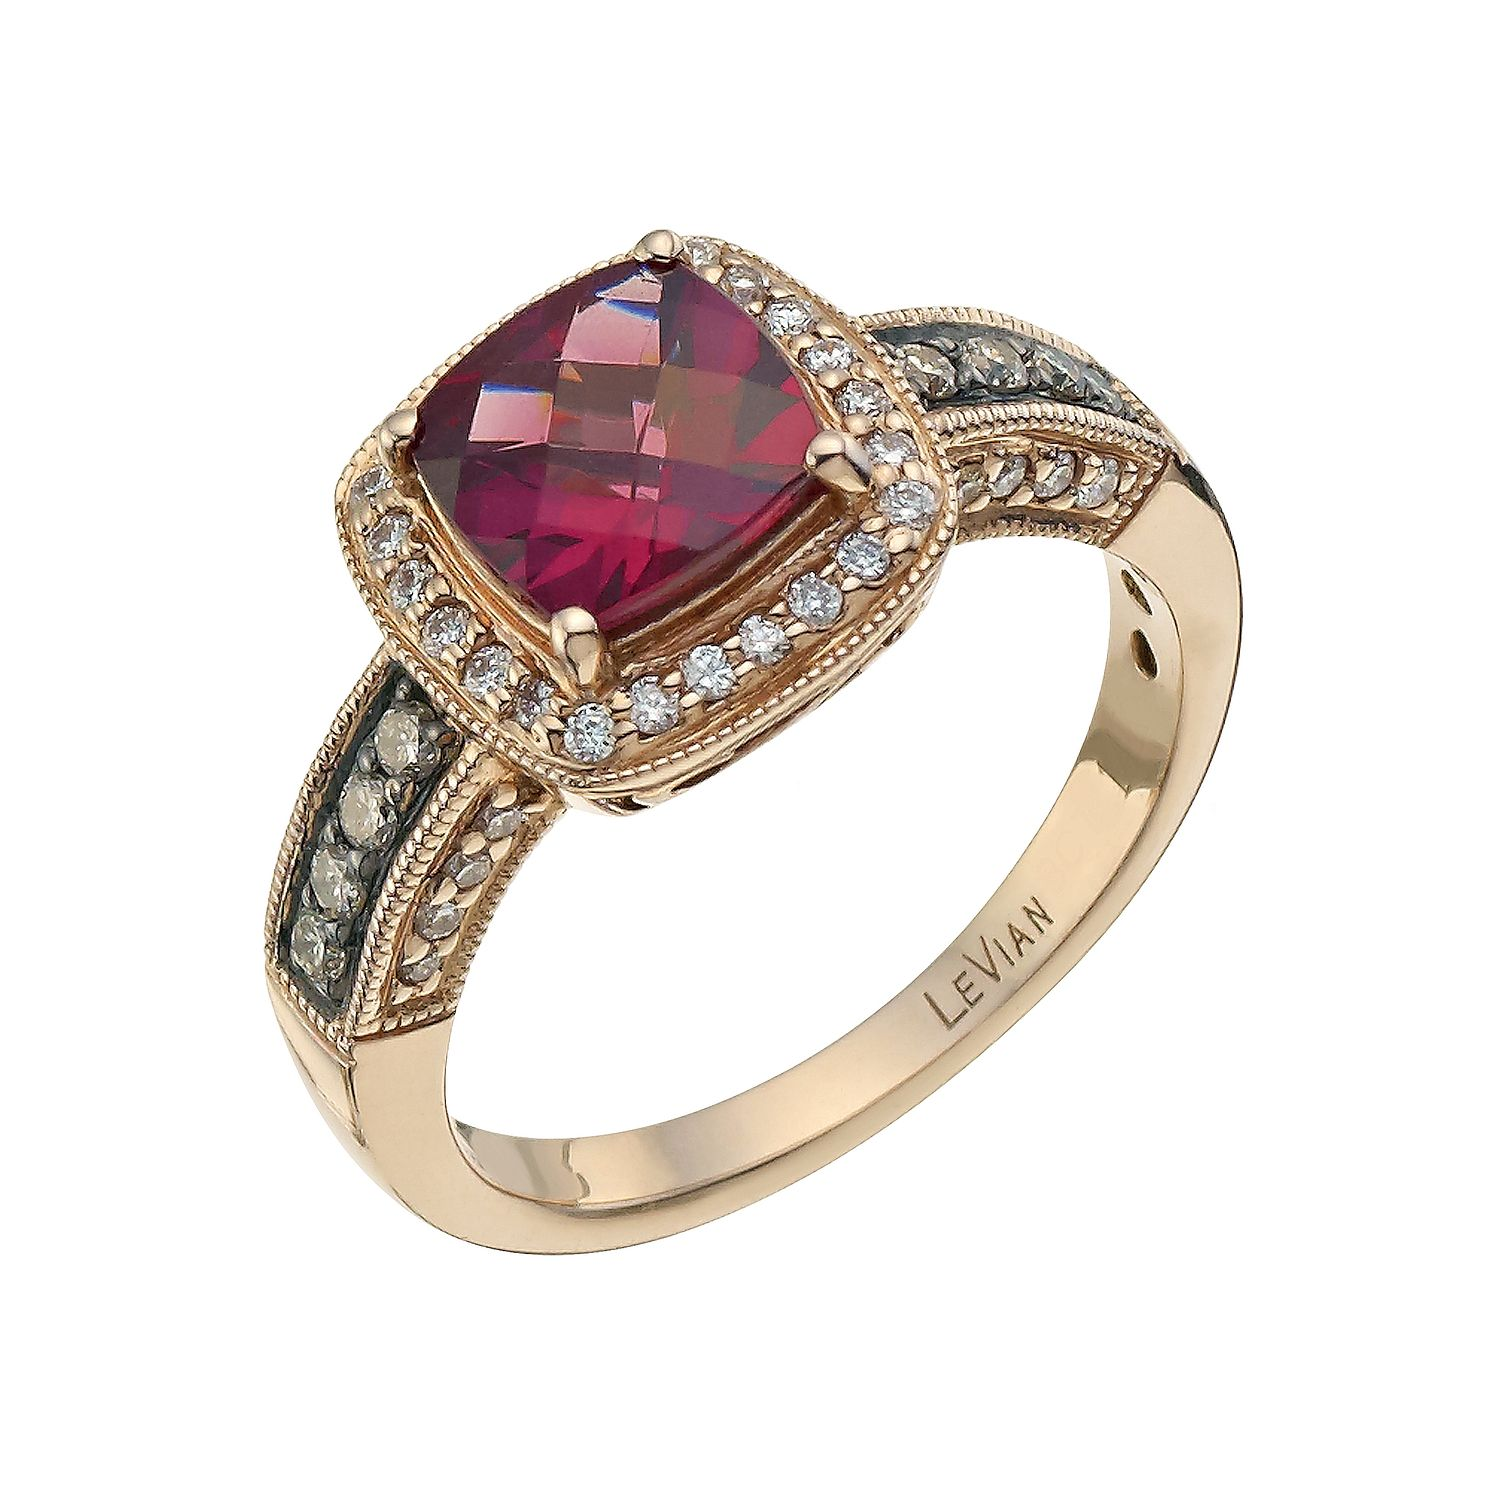 rose lyst rhodolite garnet tw diamond rings jewelry ring quartz gold normal engagement pink accent gladiator gallery product in vian le smokey and ct